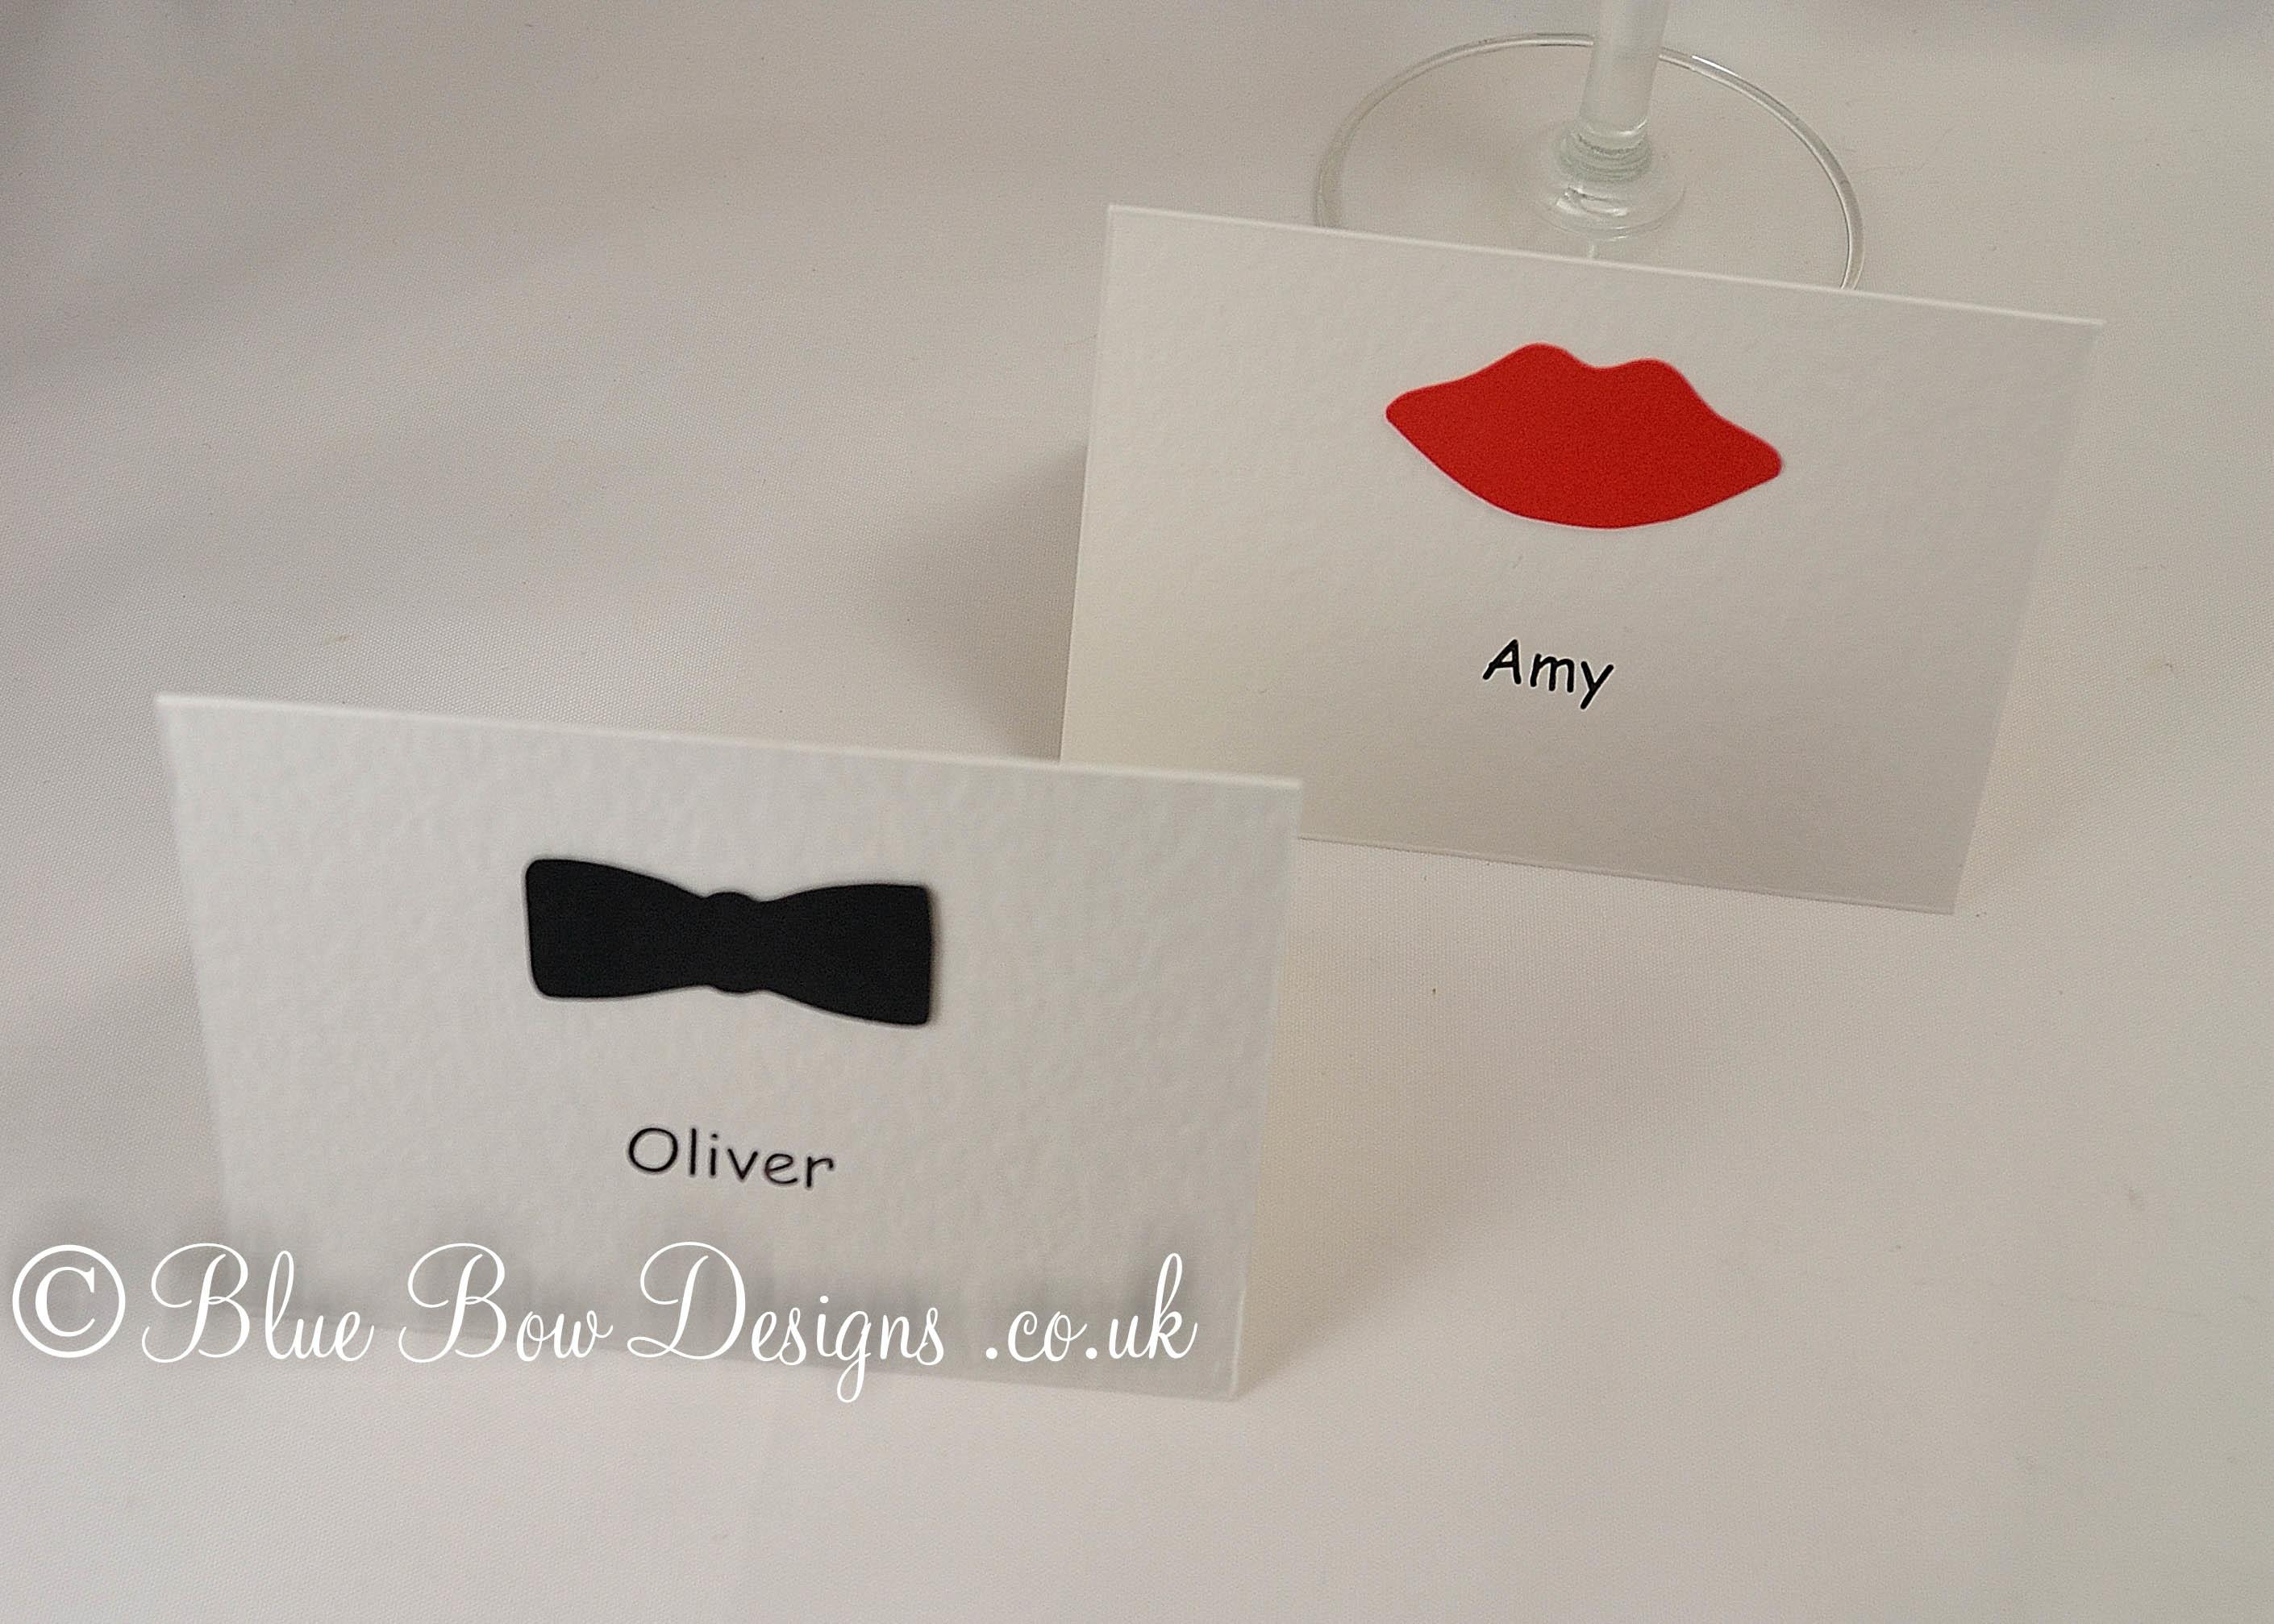 Bow tie and lip place cards